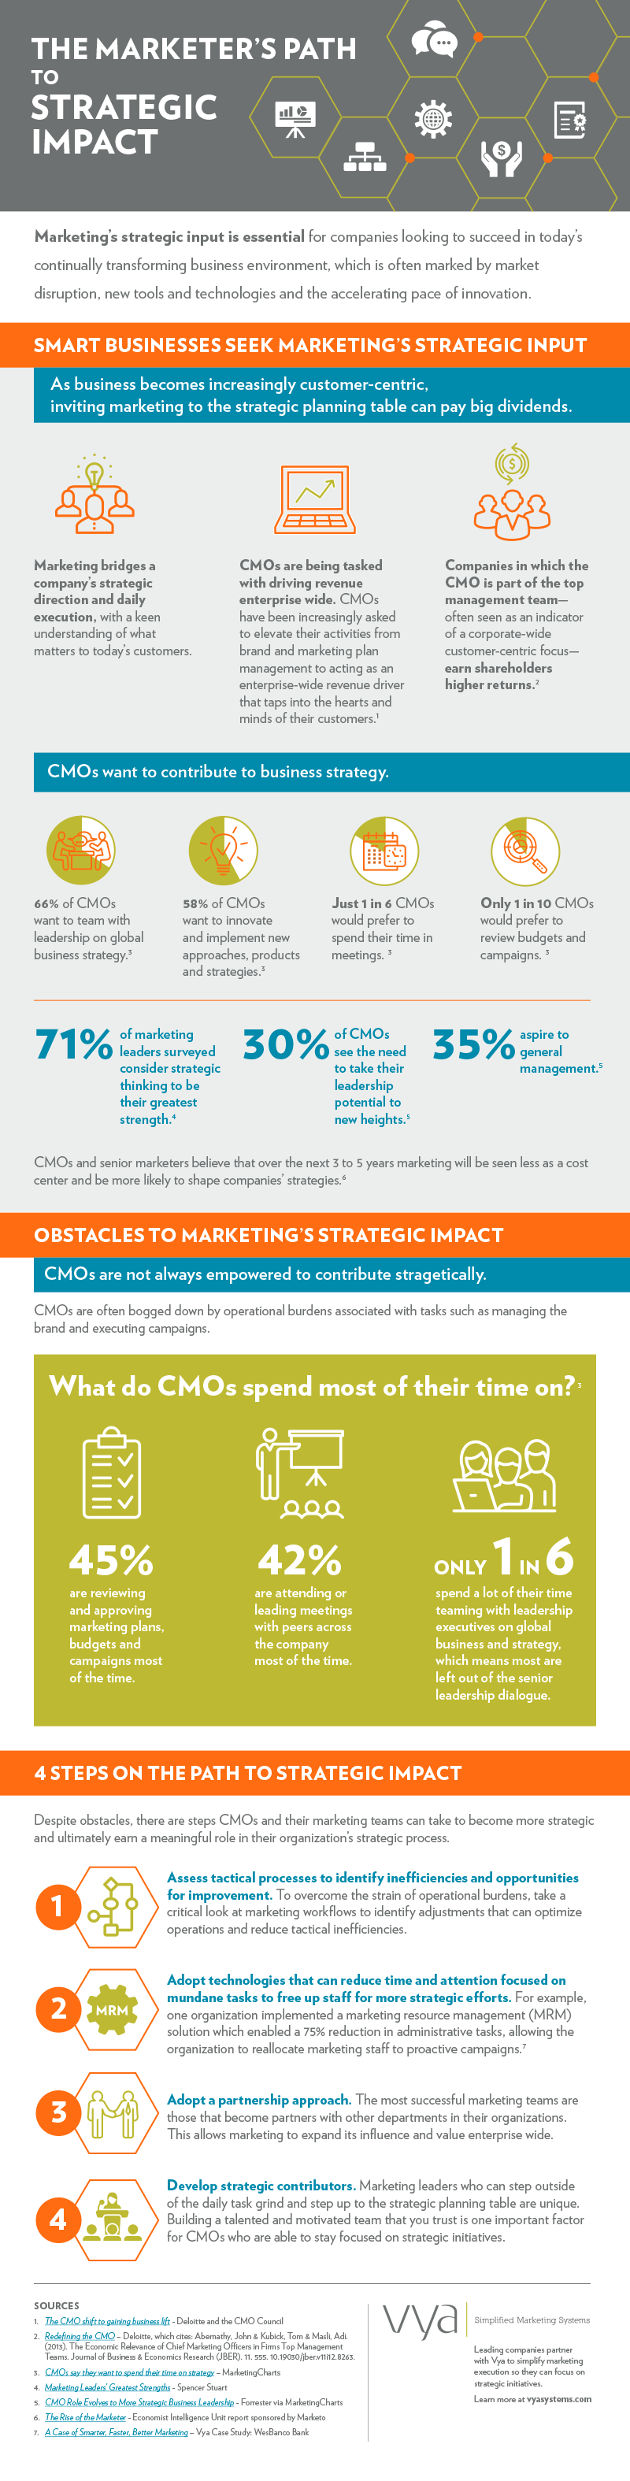 Marketers as Strategic Influencers